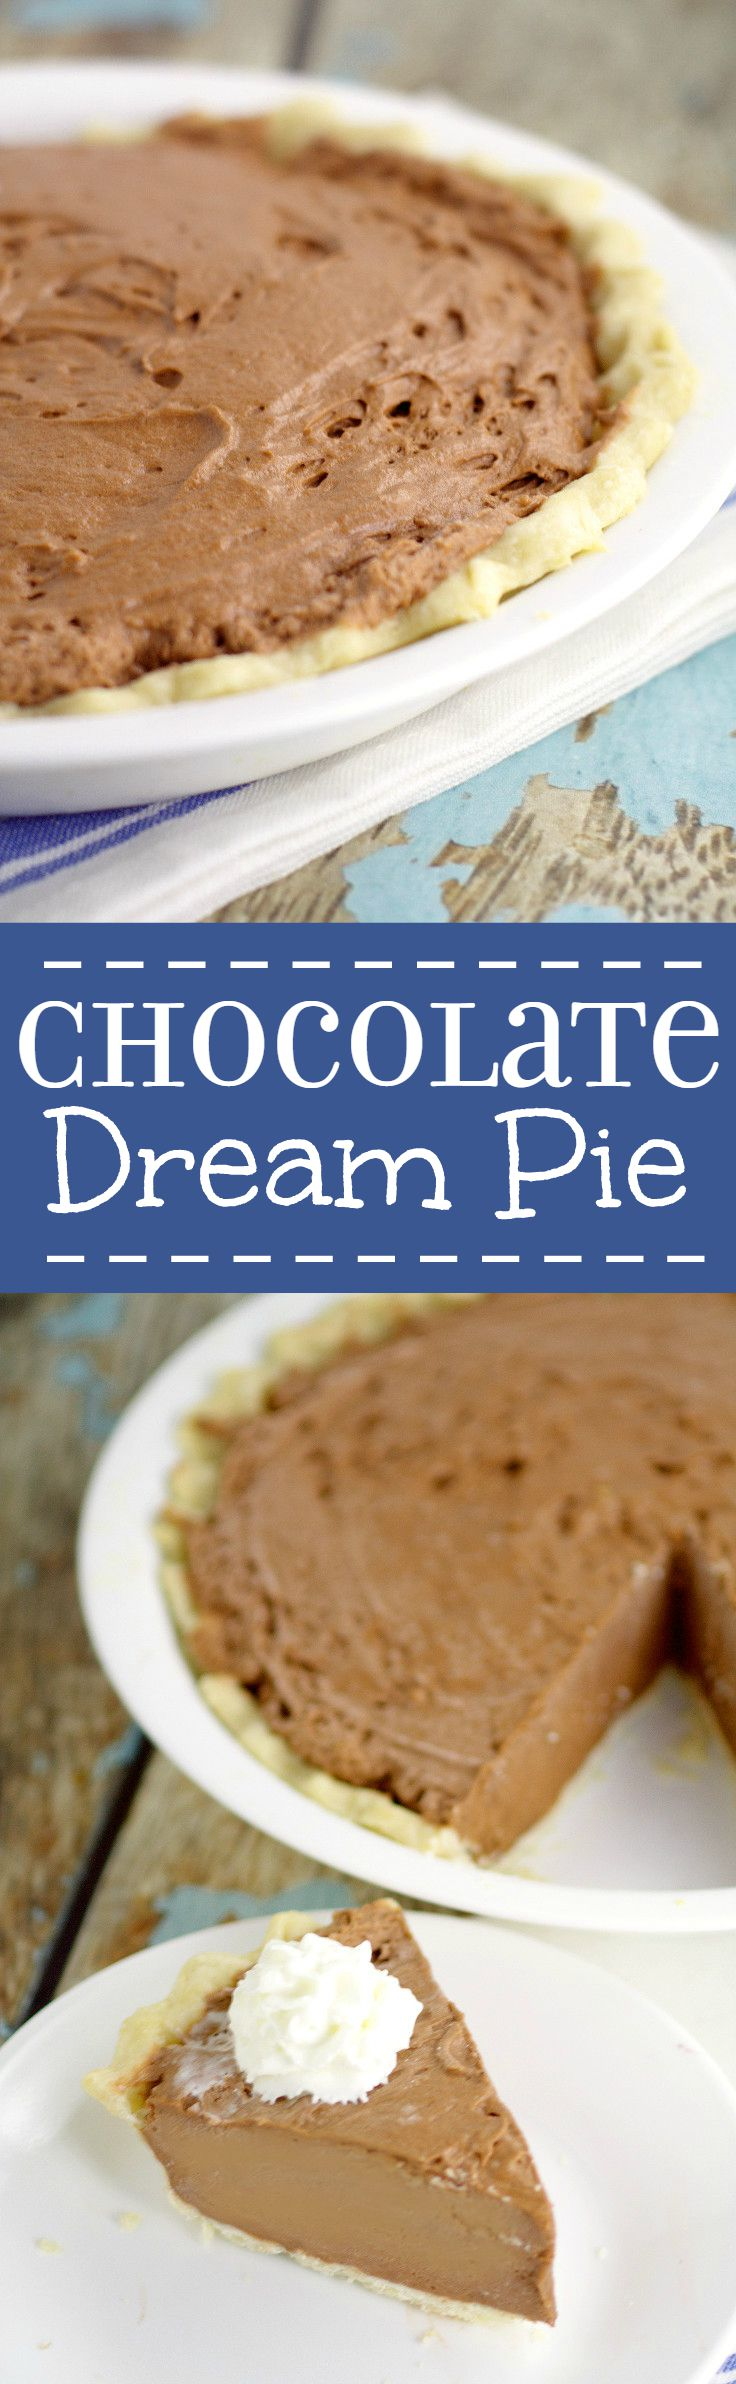 Chocolate Dream Pie | The Gracious Wife